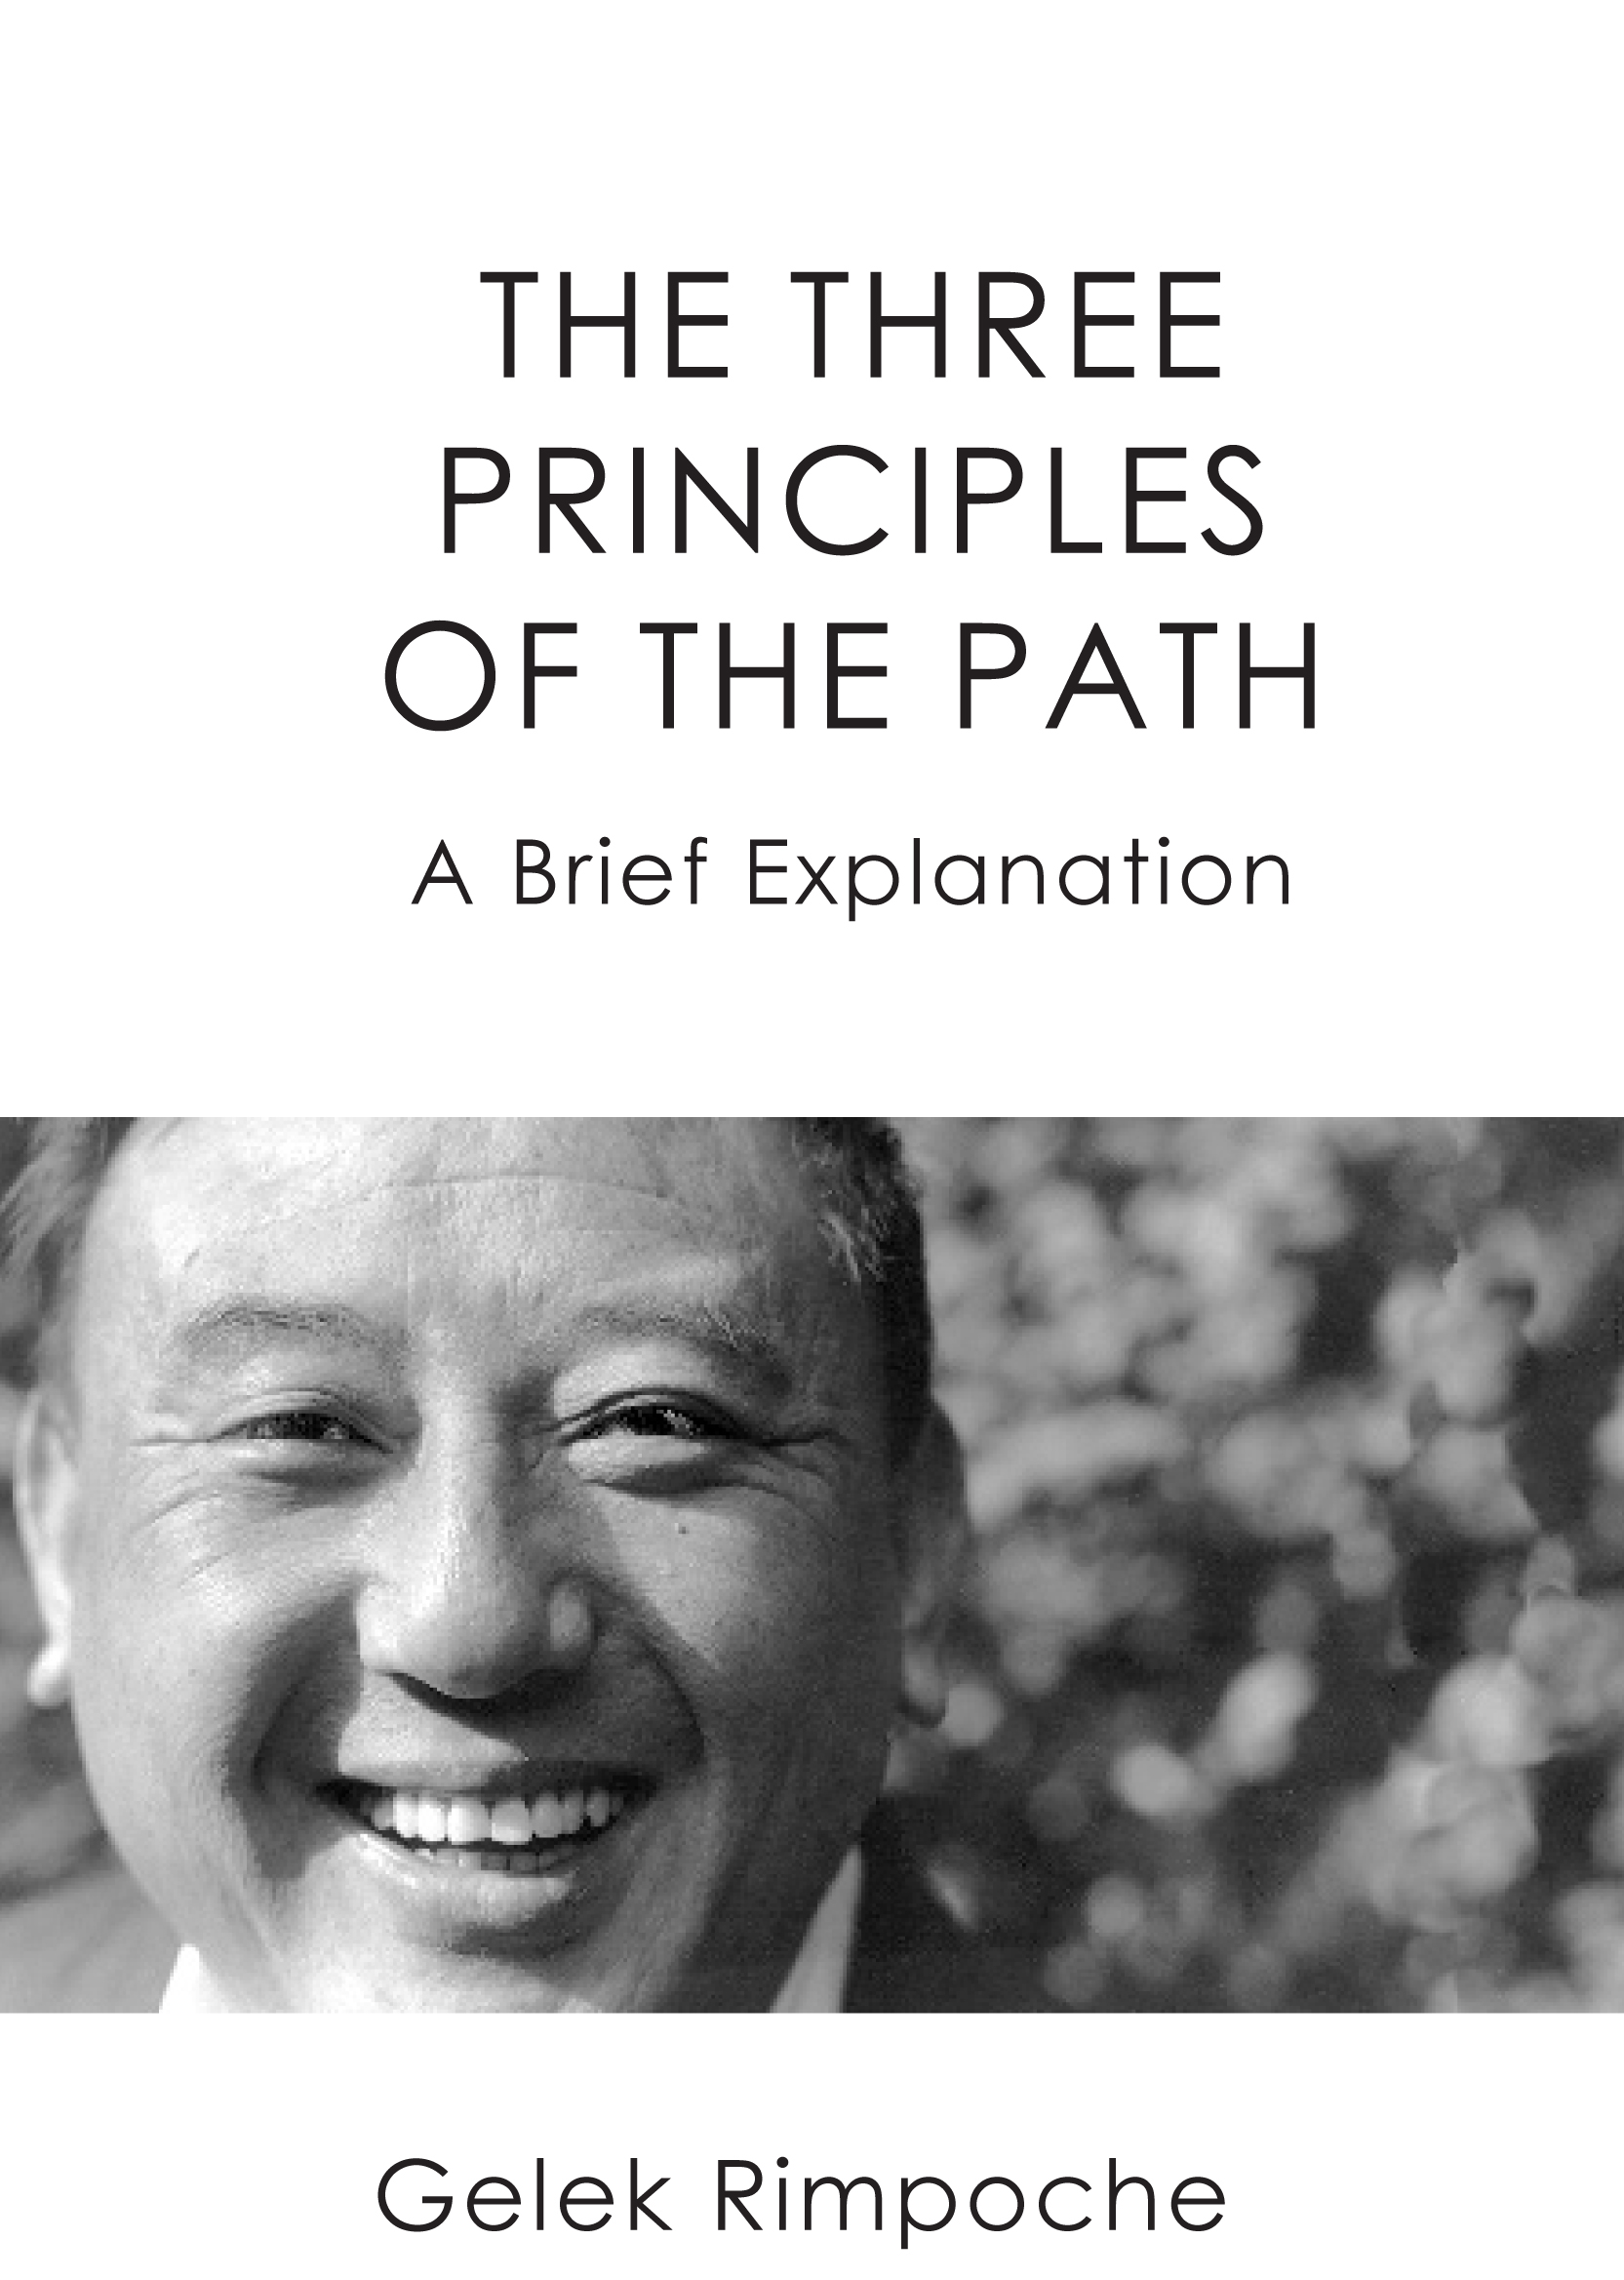 The Three Principles of the Path